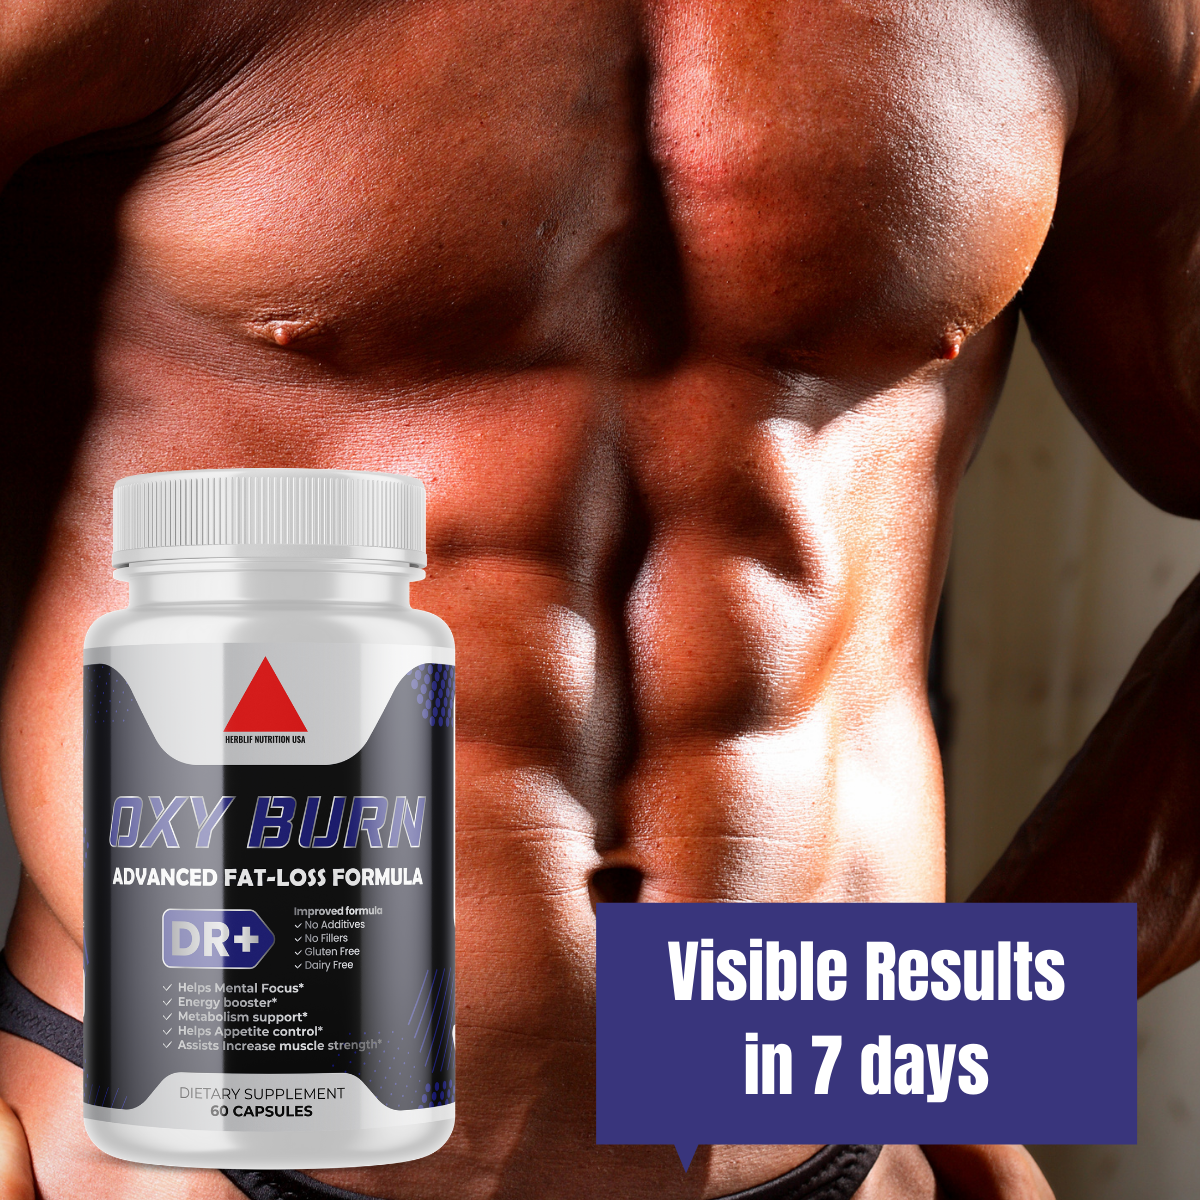 Belly Fat Burner Pills to Lose Stomach Fat, Weight Loss Supplement for Men